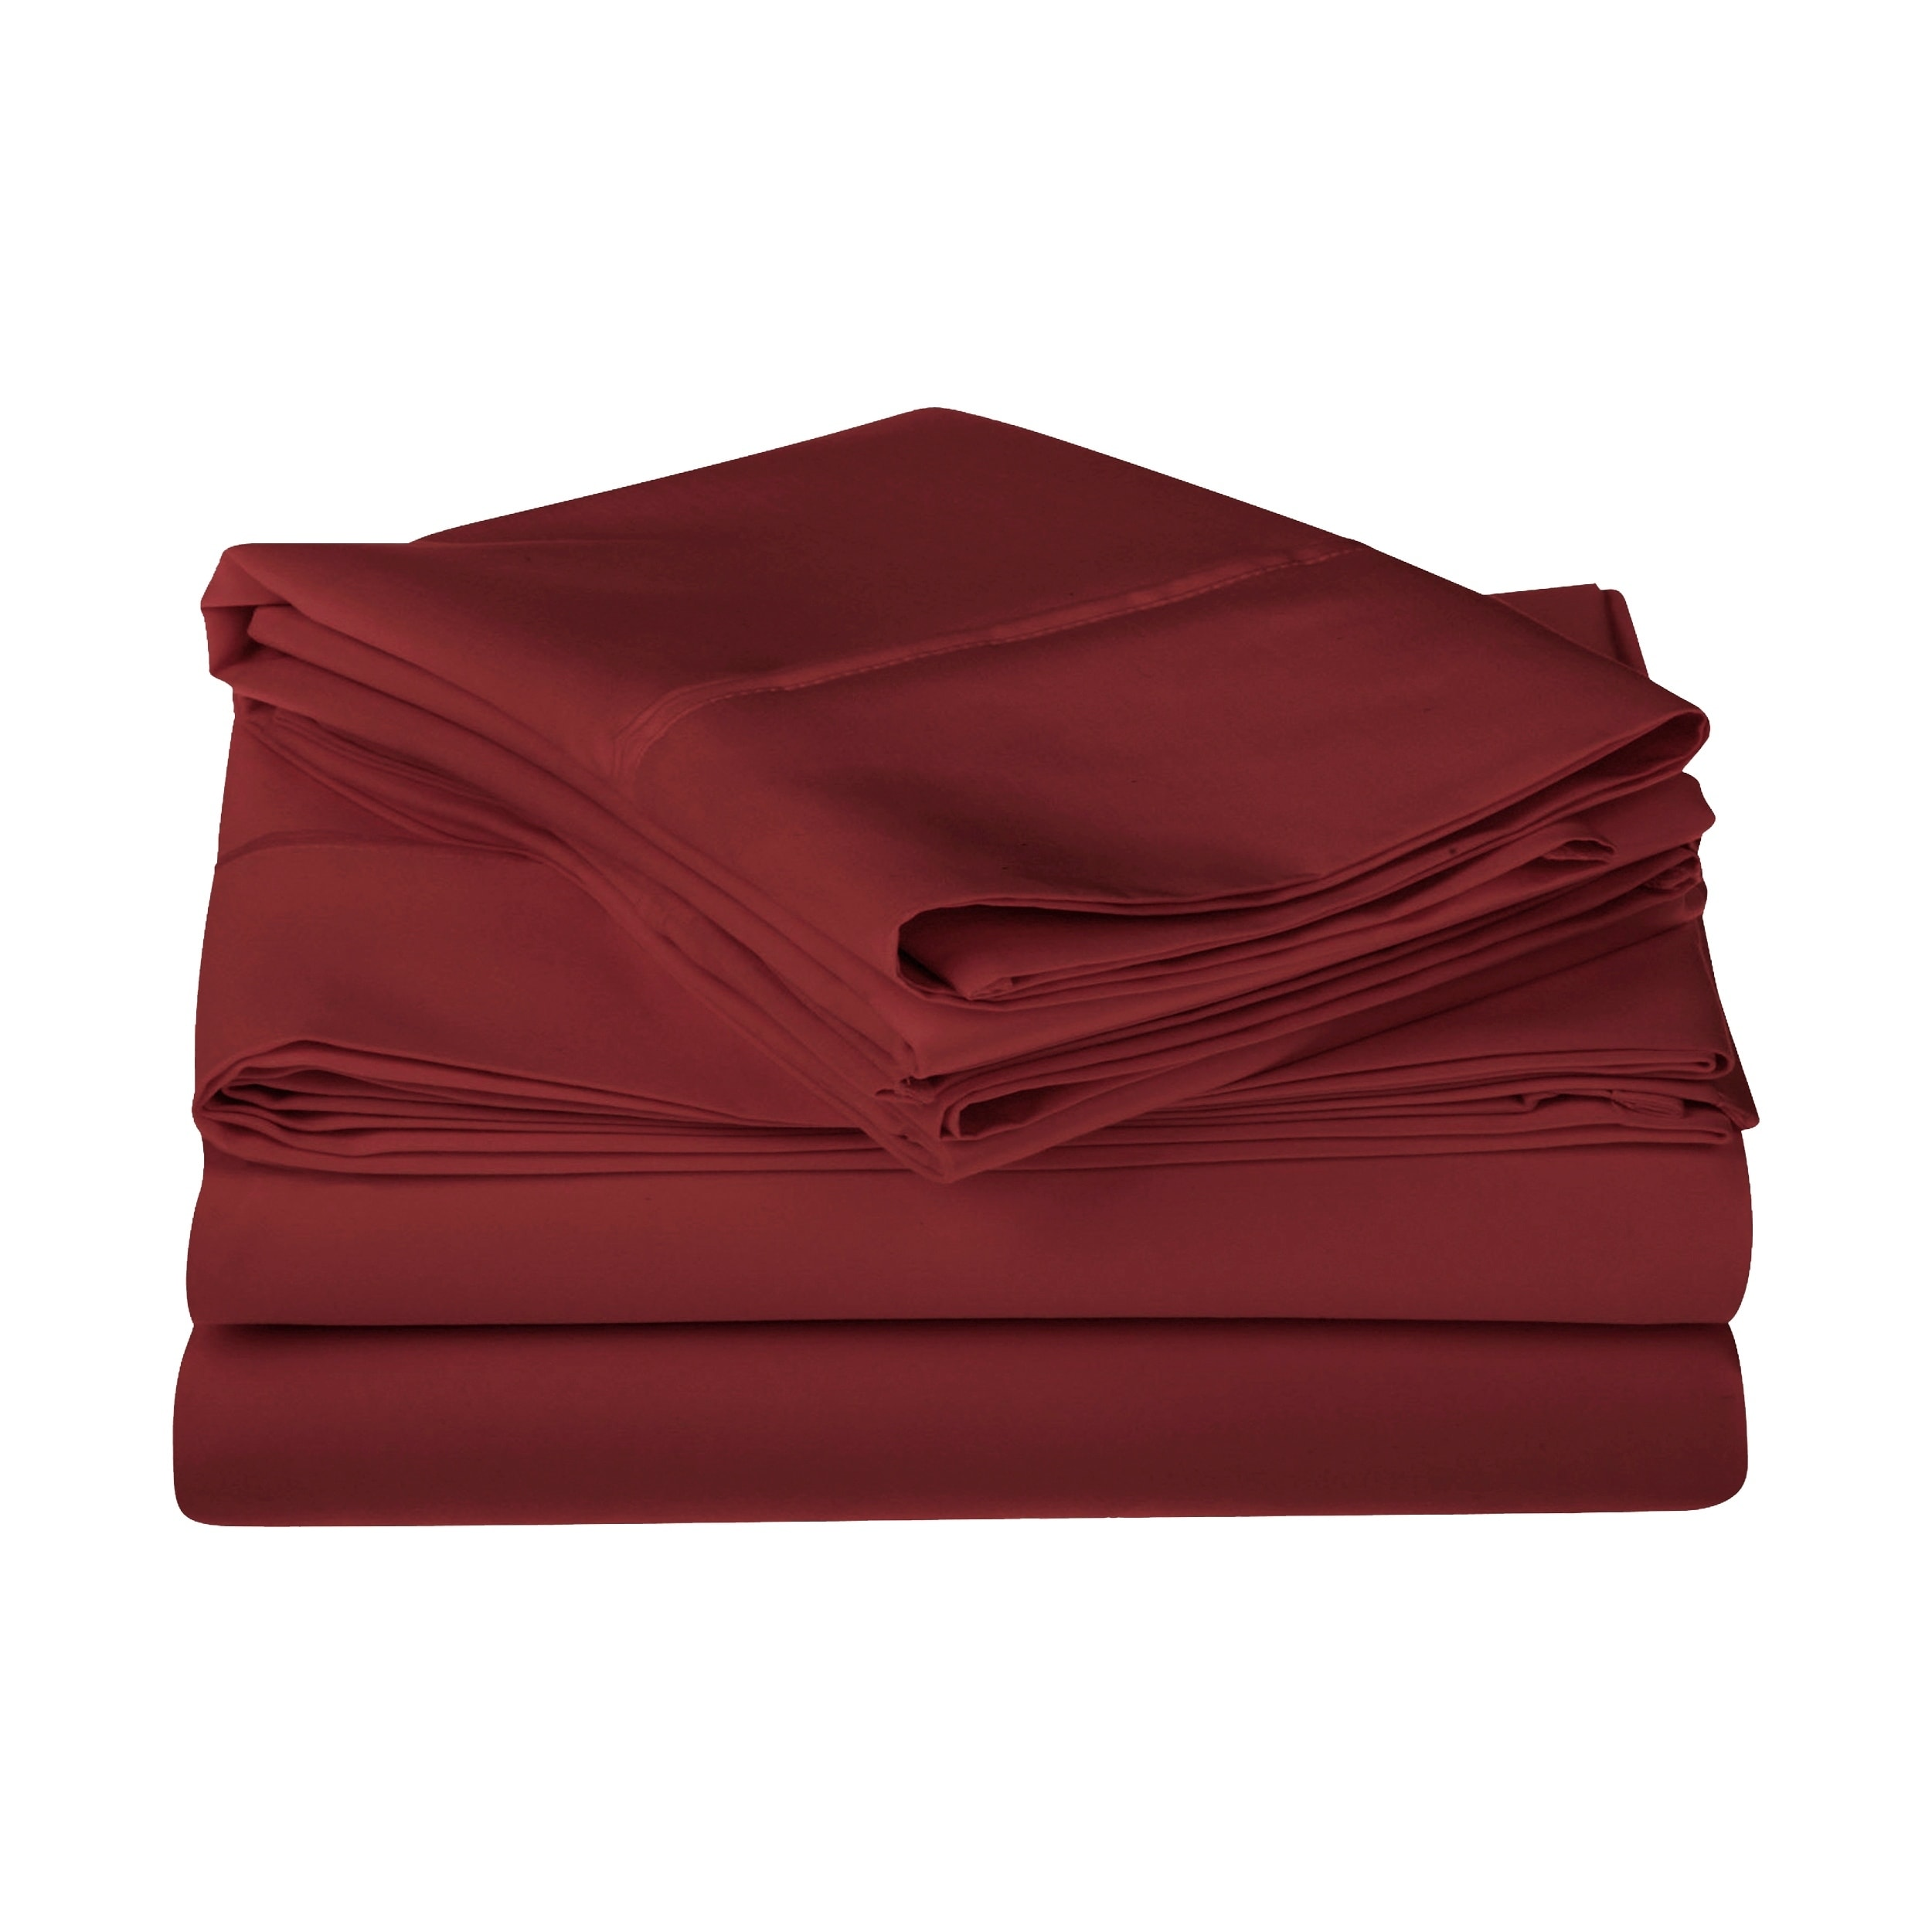 1200 Count Egyptian Cotton Extra Deep Pocket Red Solid Bed Sheet Set